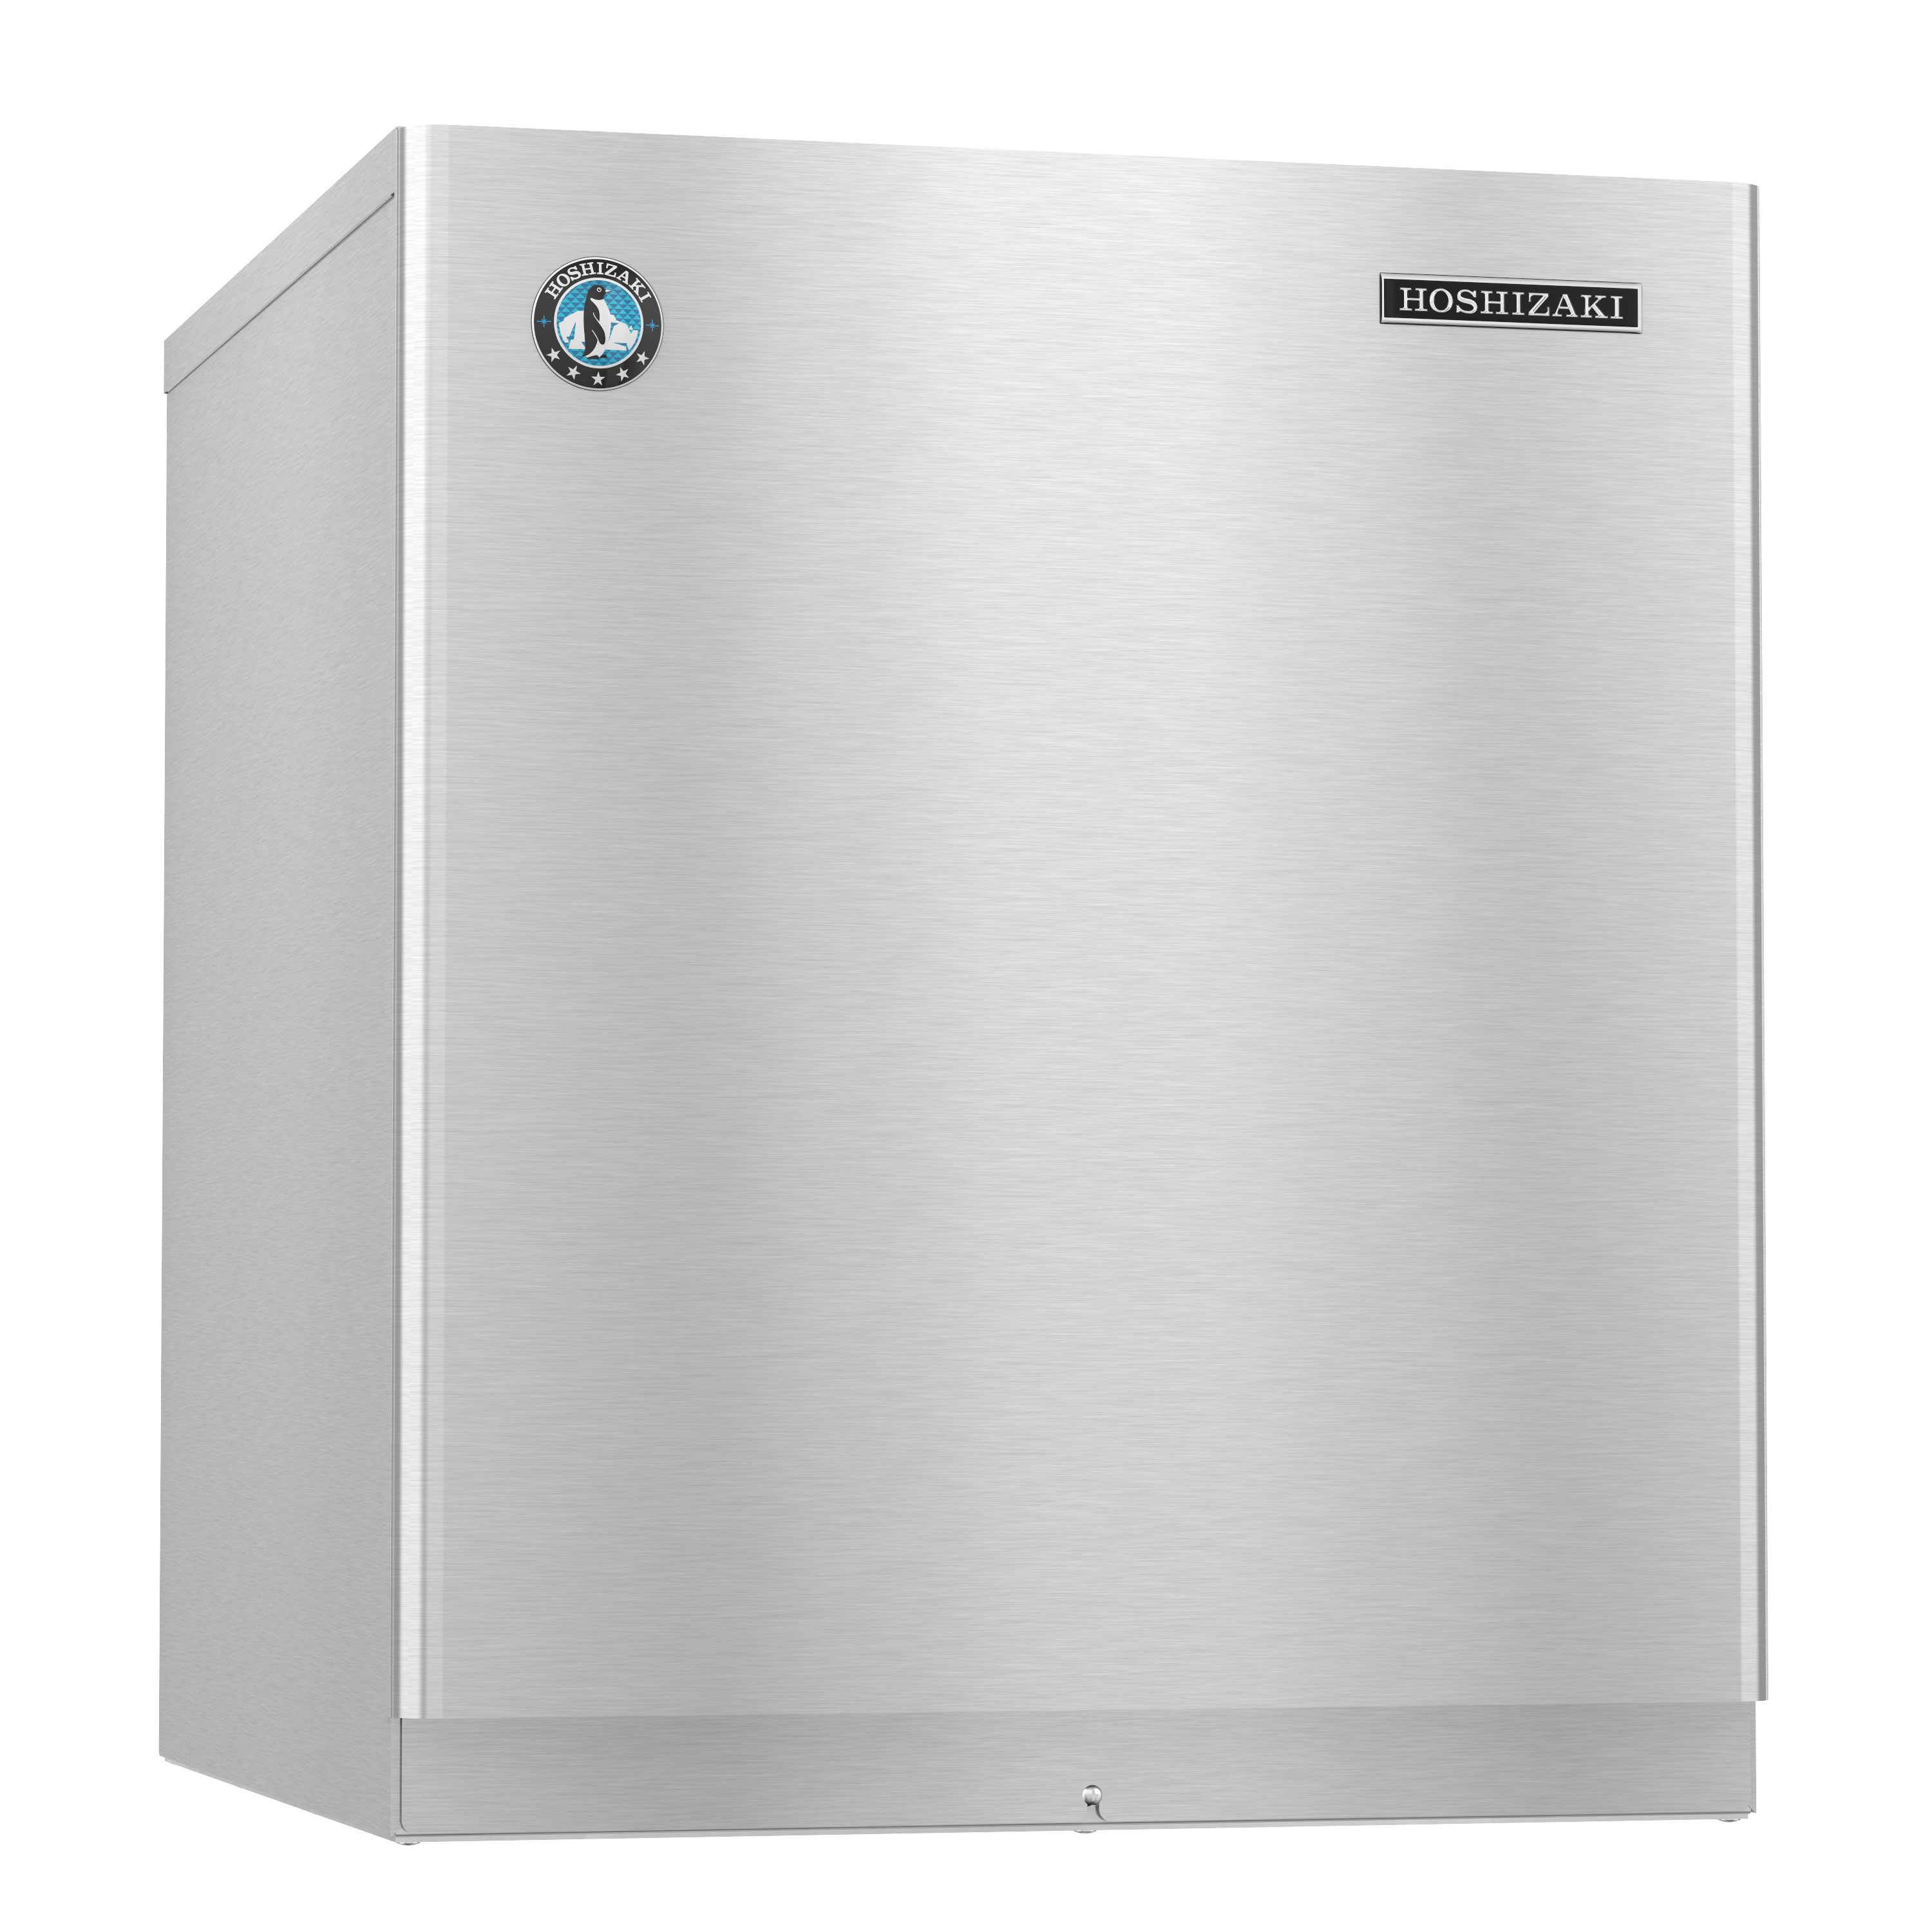 Hoshizaki FD-650MWJ-C ice cubers, ice storage & ice dispensers